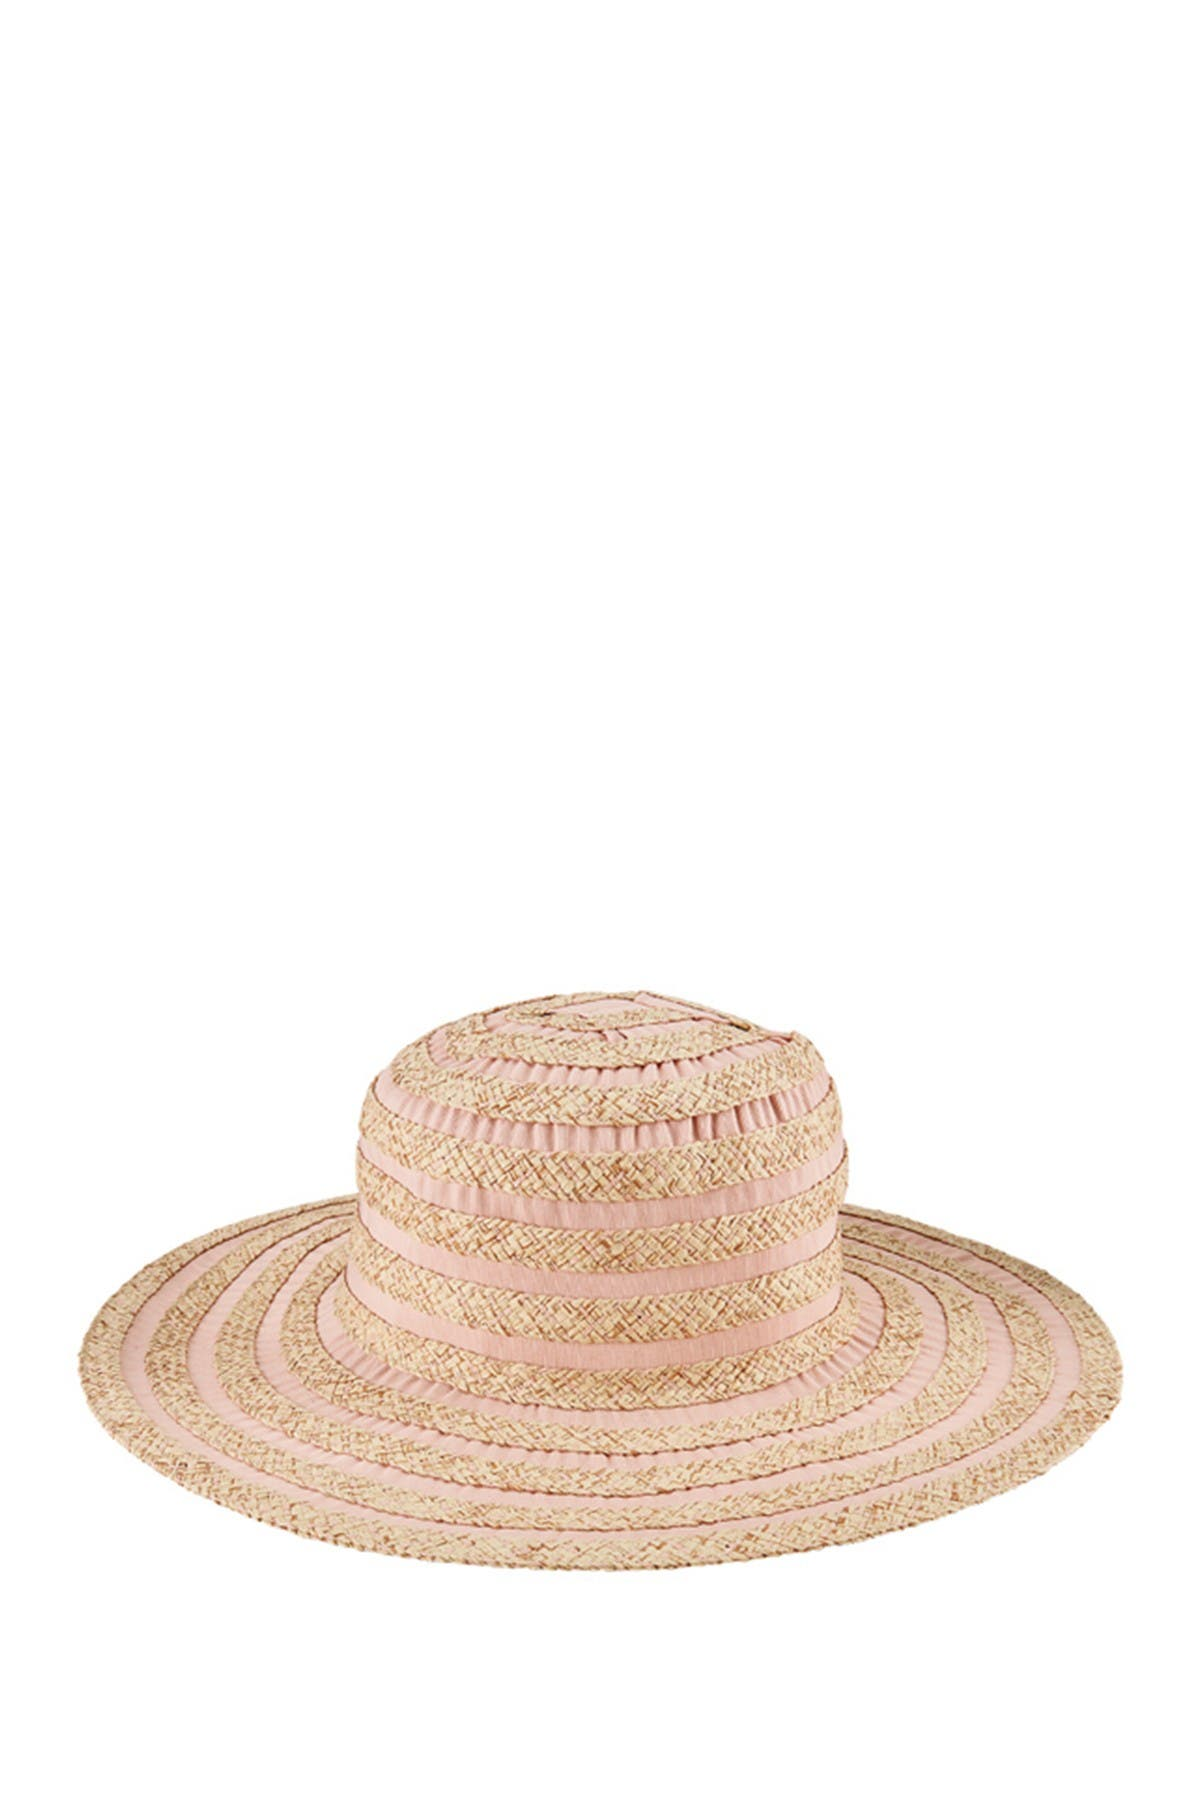 Image of SAN DIEGO HAT Striped Sun Hat